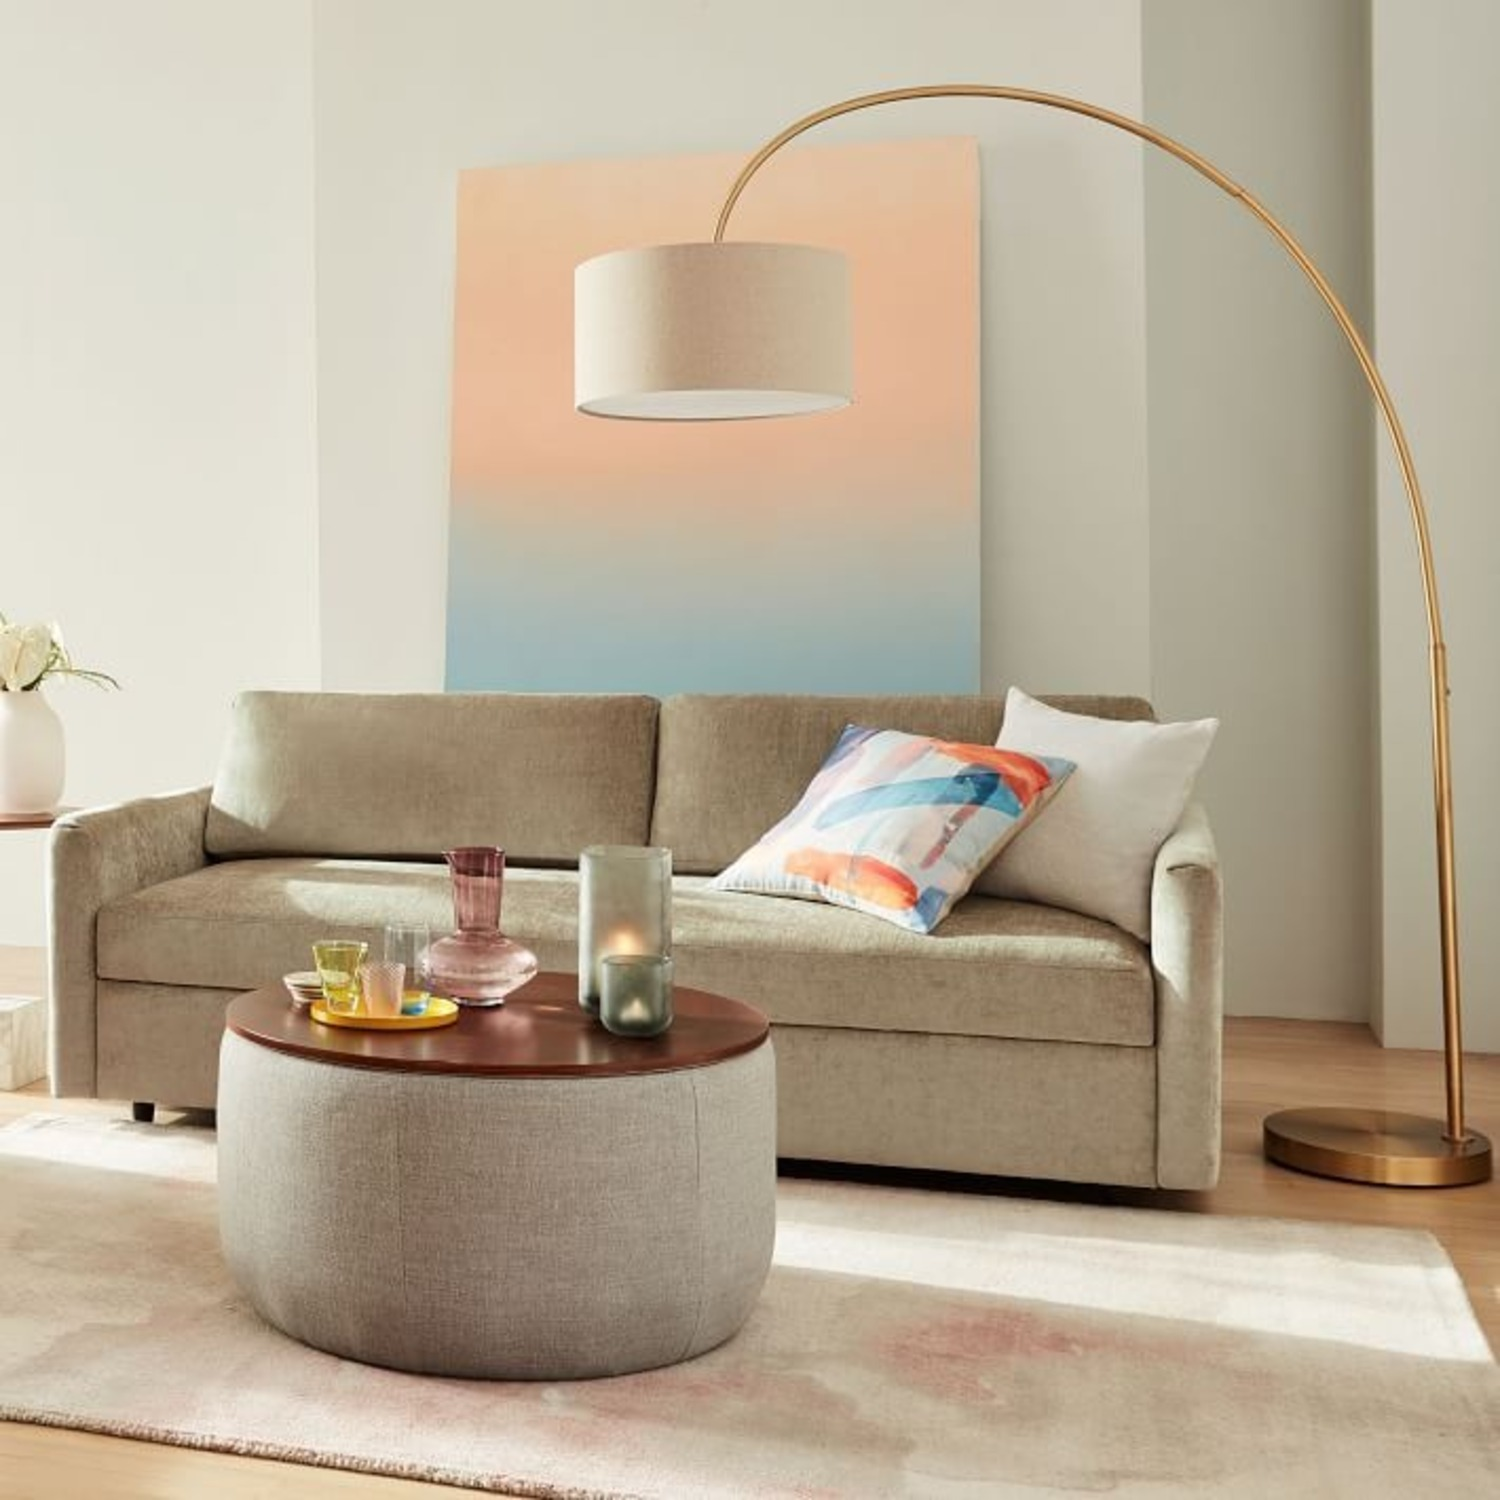 West Elm Cfl Overarching Floor Lamp - image-2